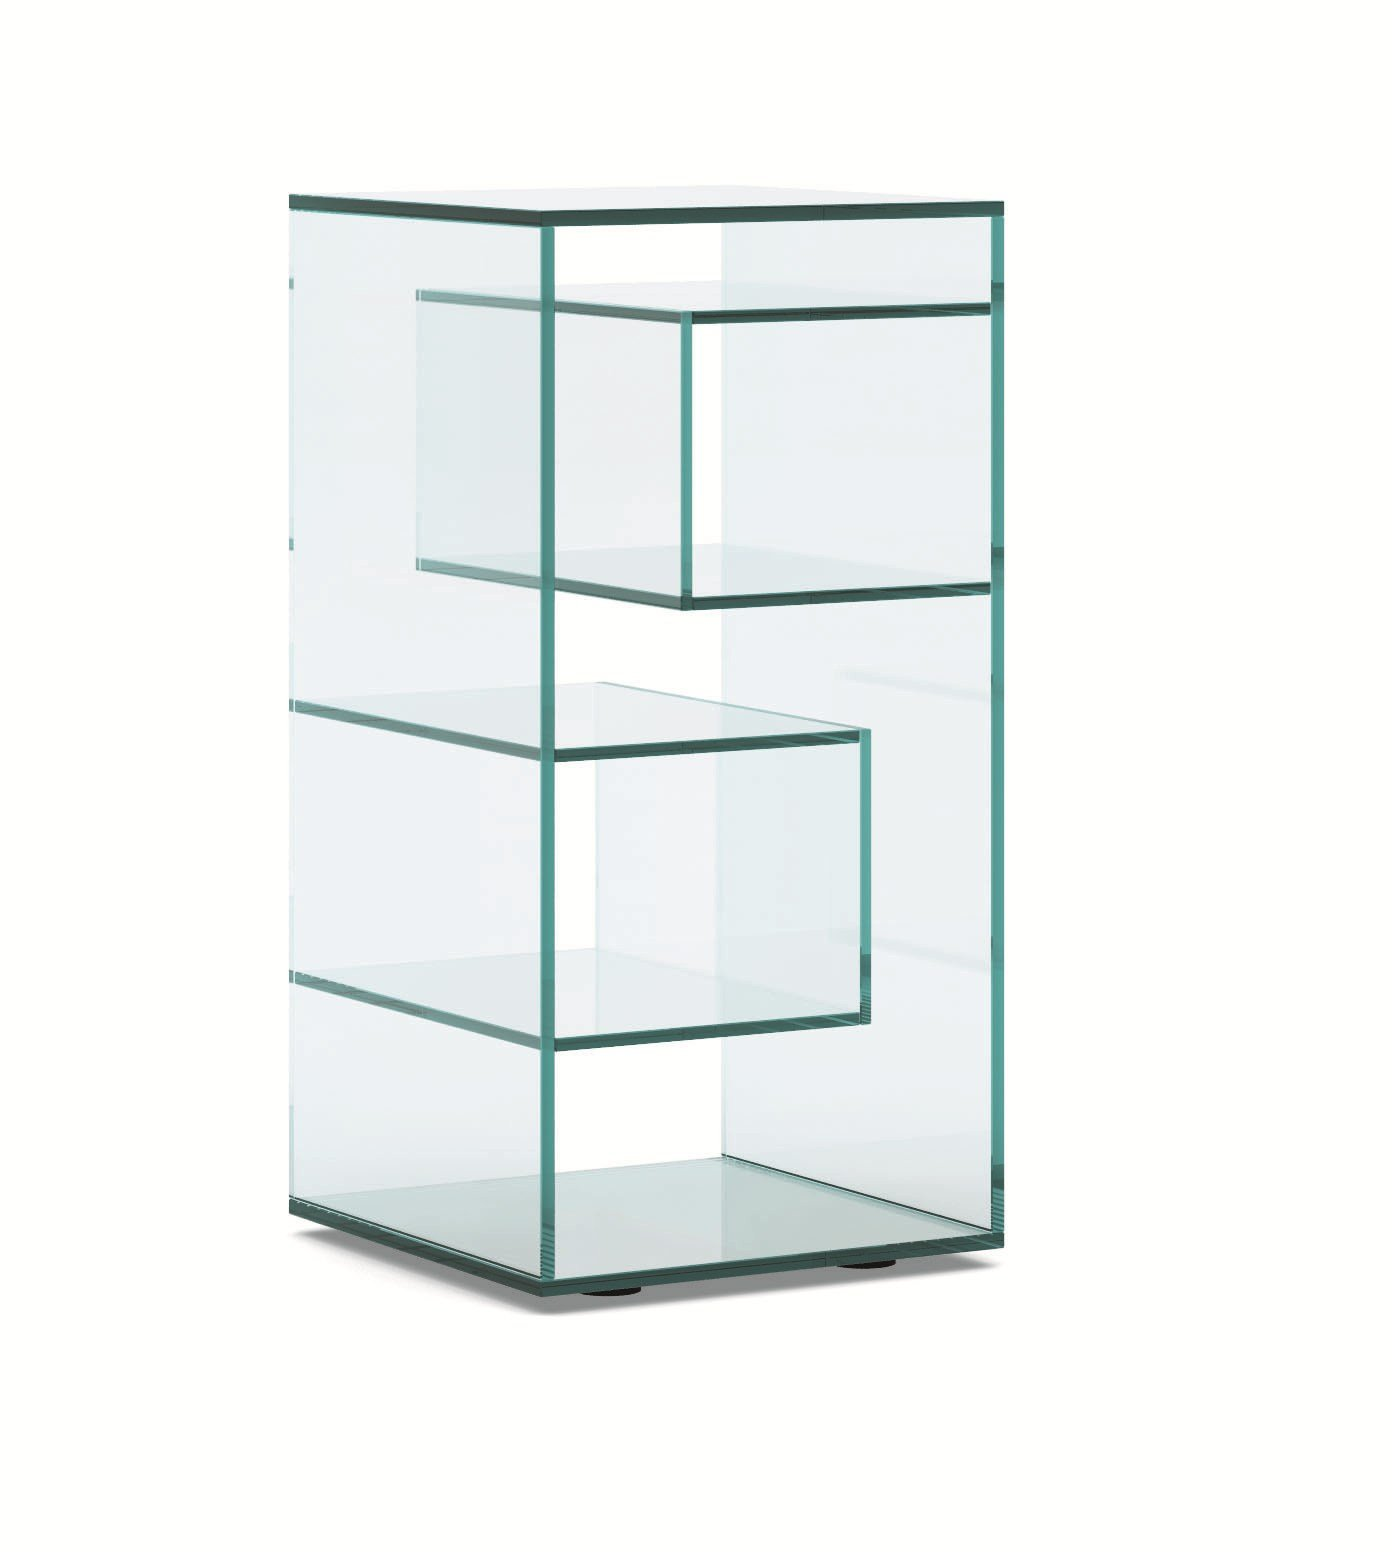 square glass bedside table liber e by tonelli design design luca  - square glass bedside table liber e by tonelli design design luca papini